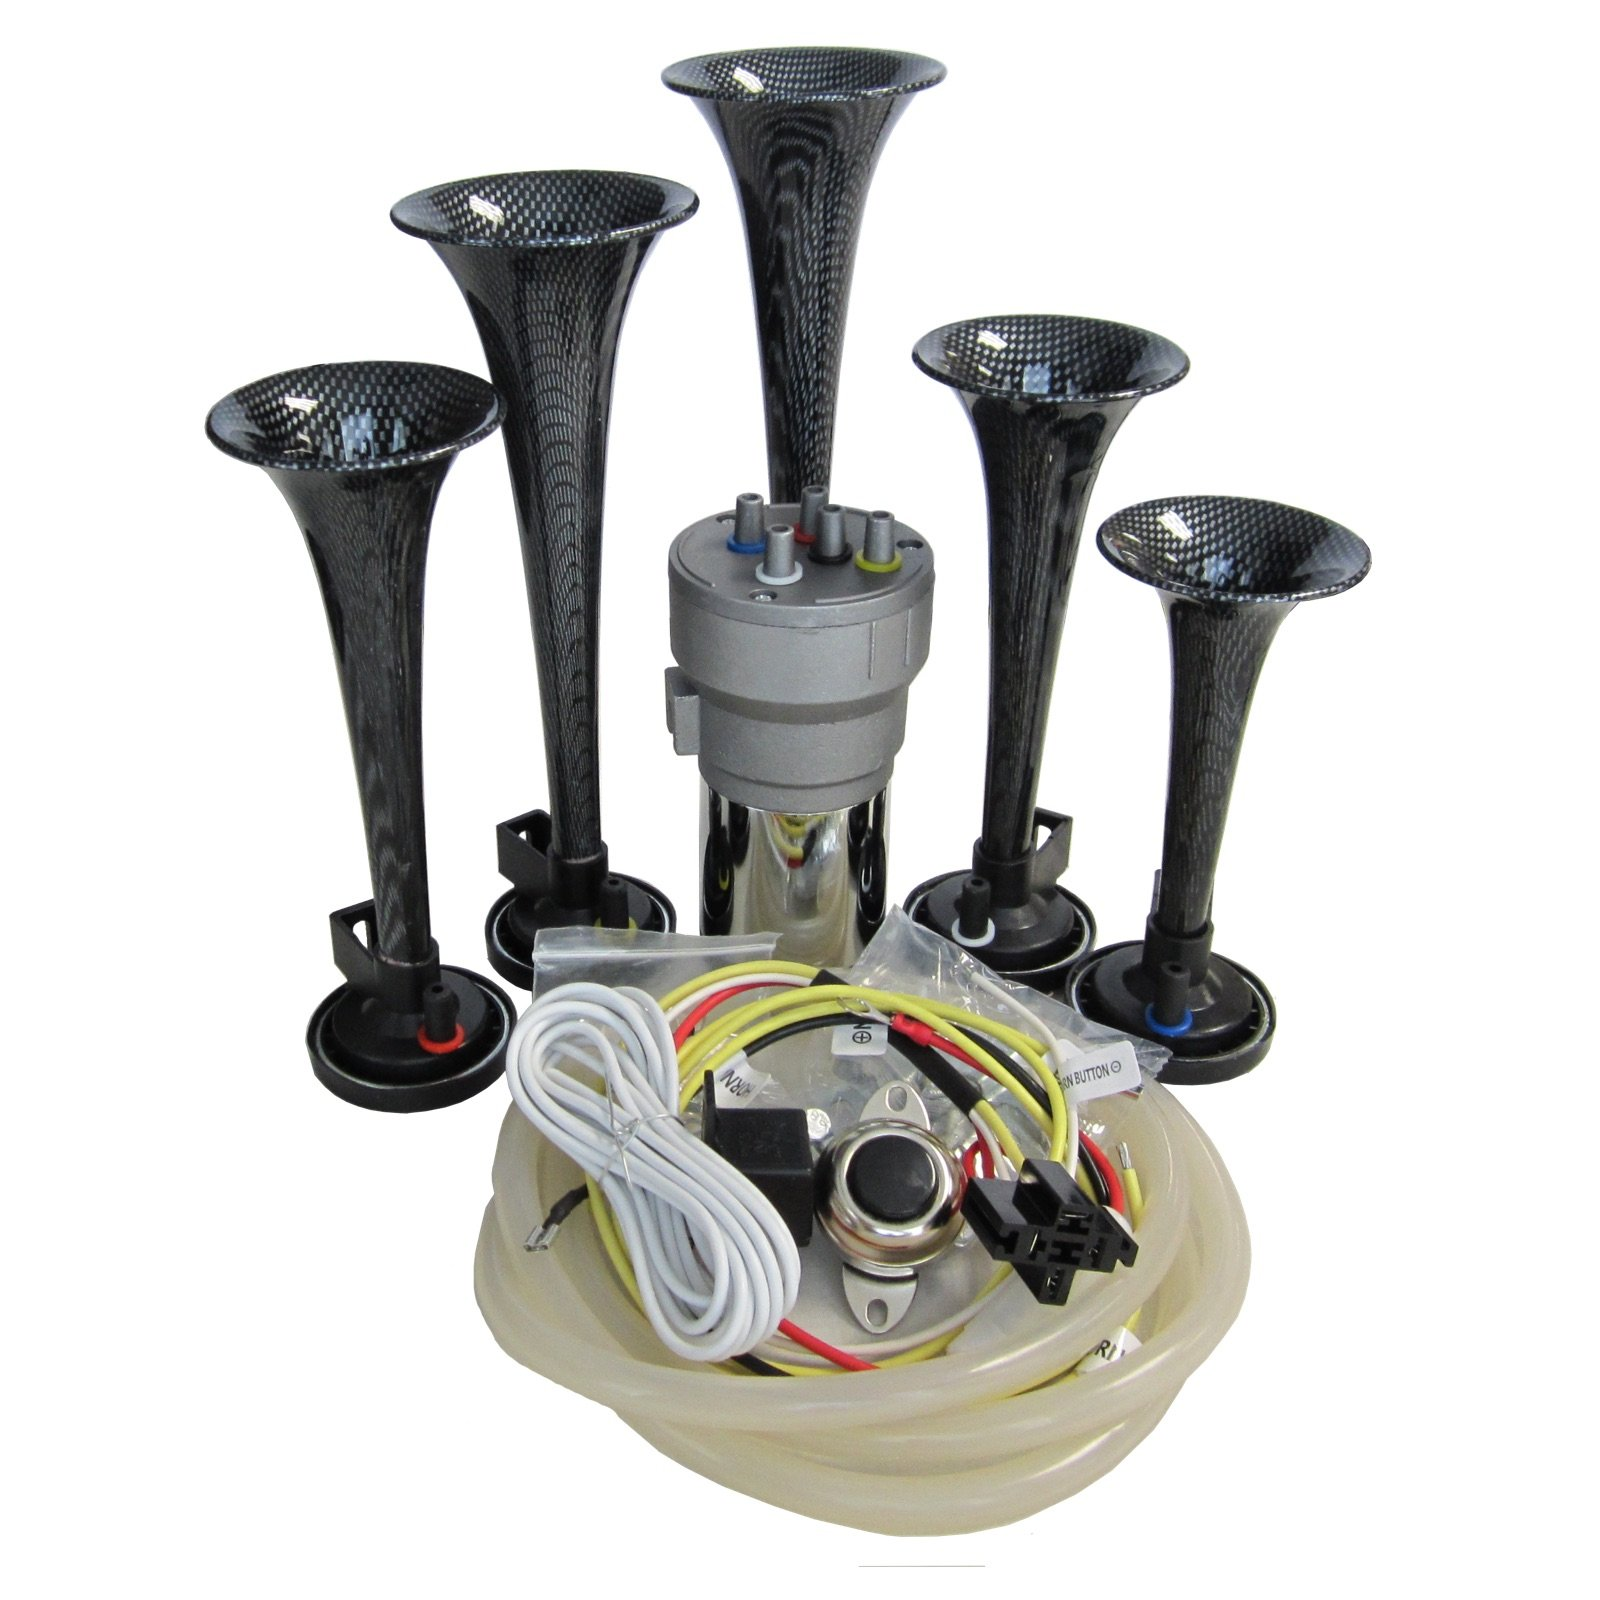 OEMLINK International LTD Dixie Air Horn Carbon Fiber Look - Dixieland Premium Full 12 Note Version with Installation Wire Kit and Button by OEMLINK International LTD (Image #1)